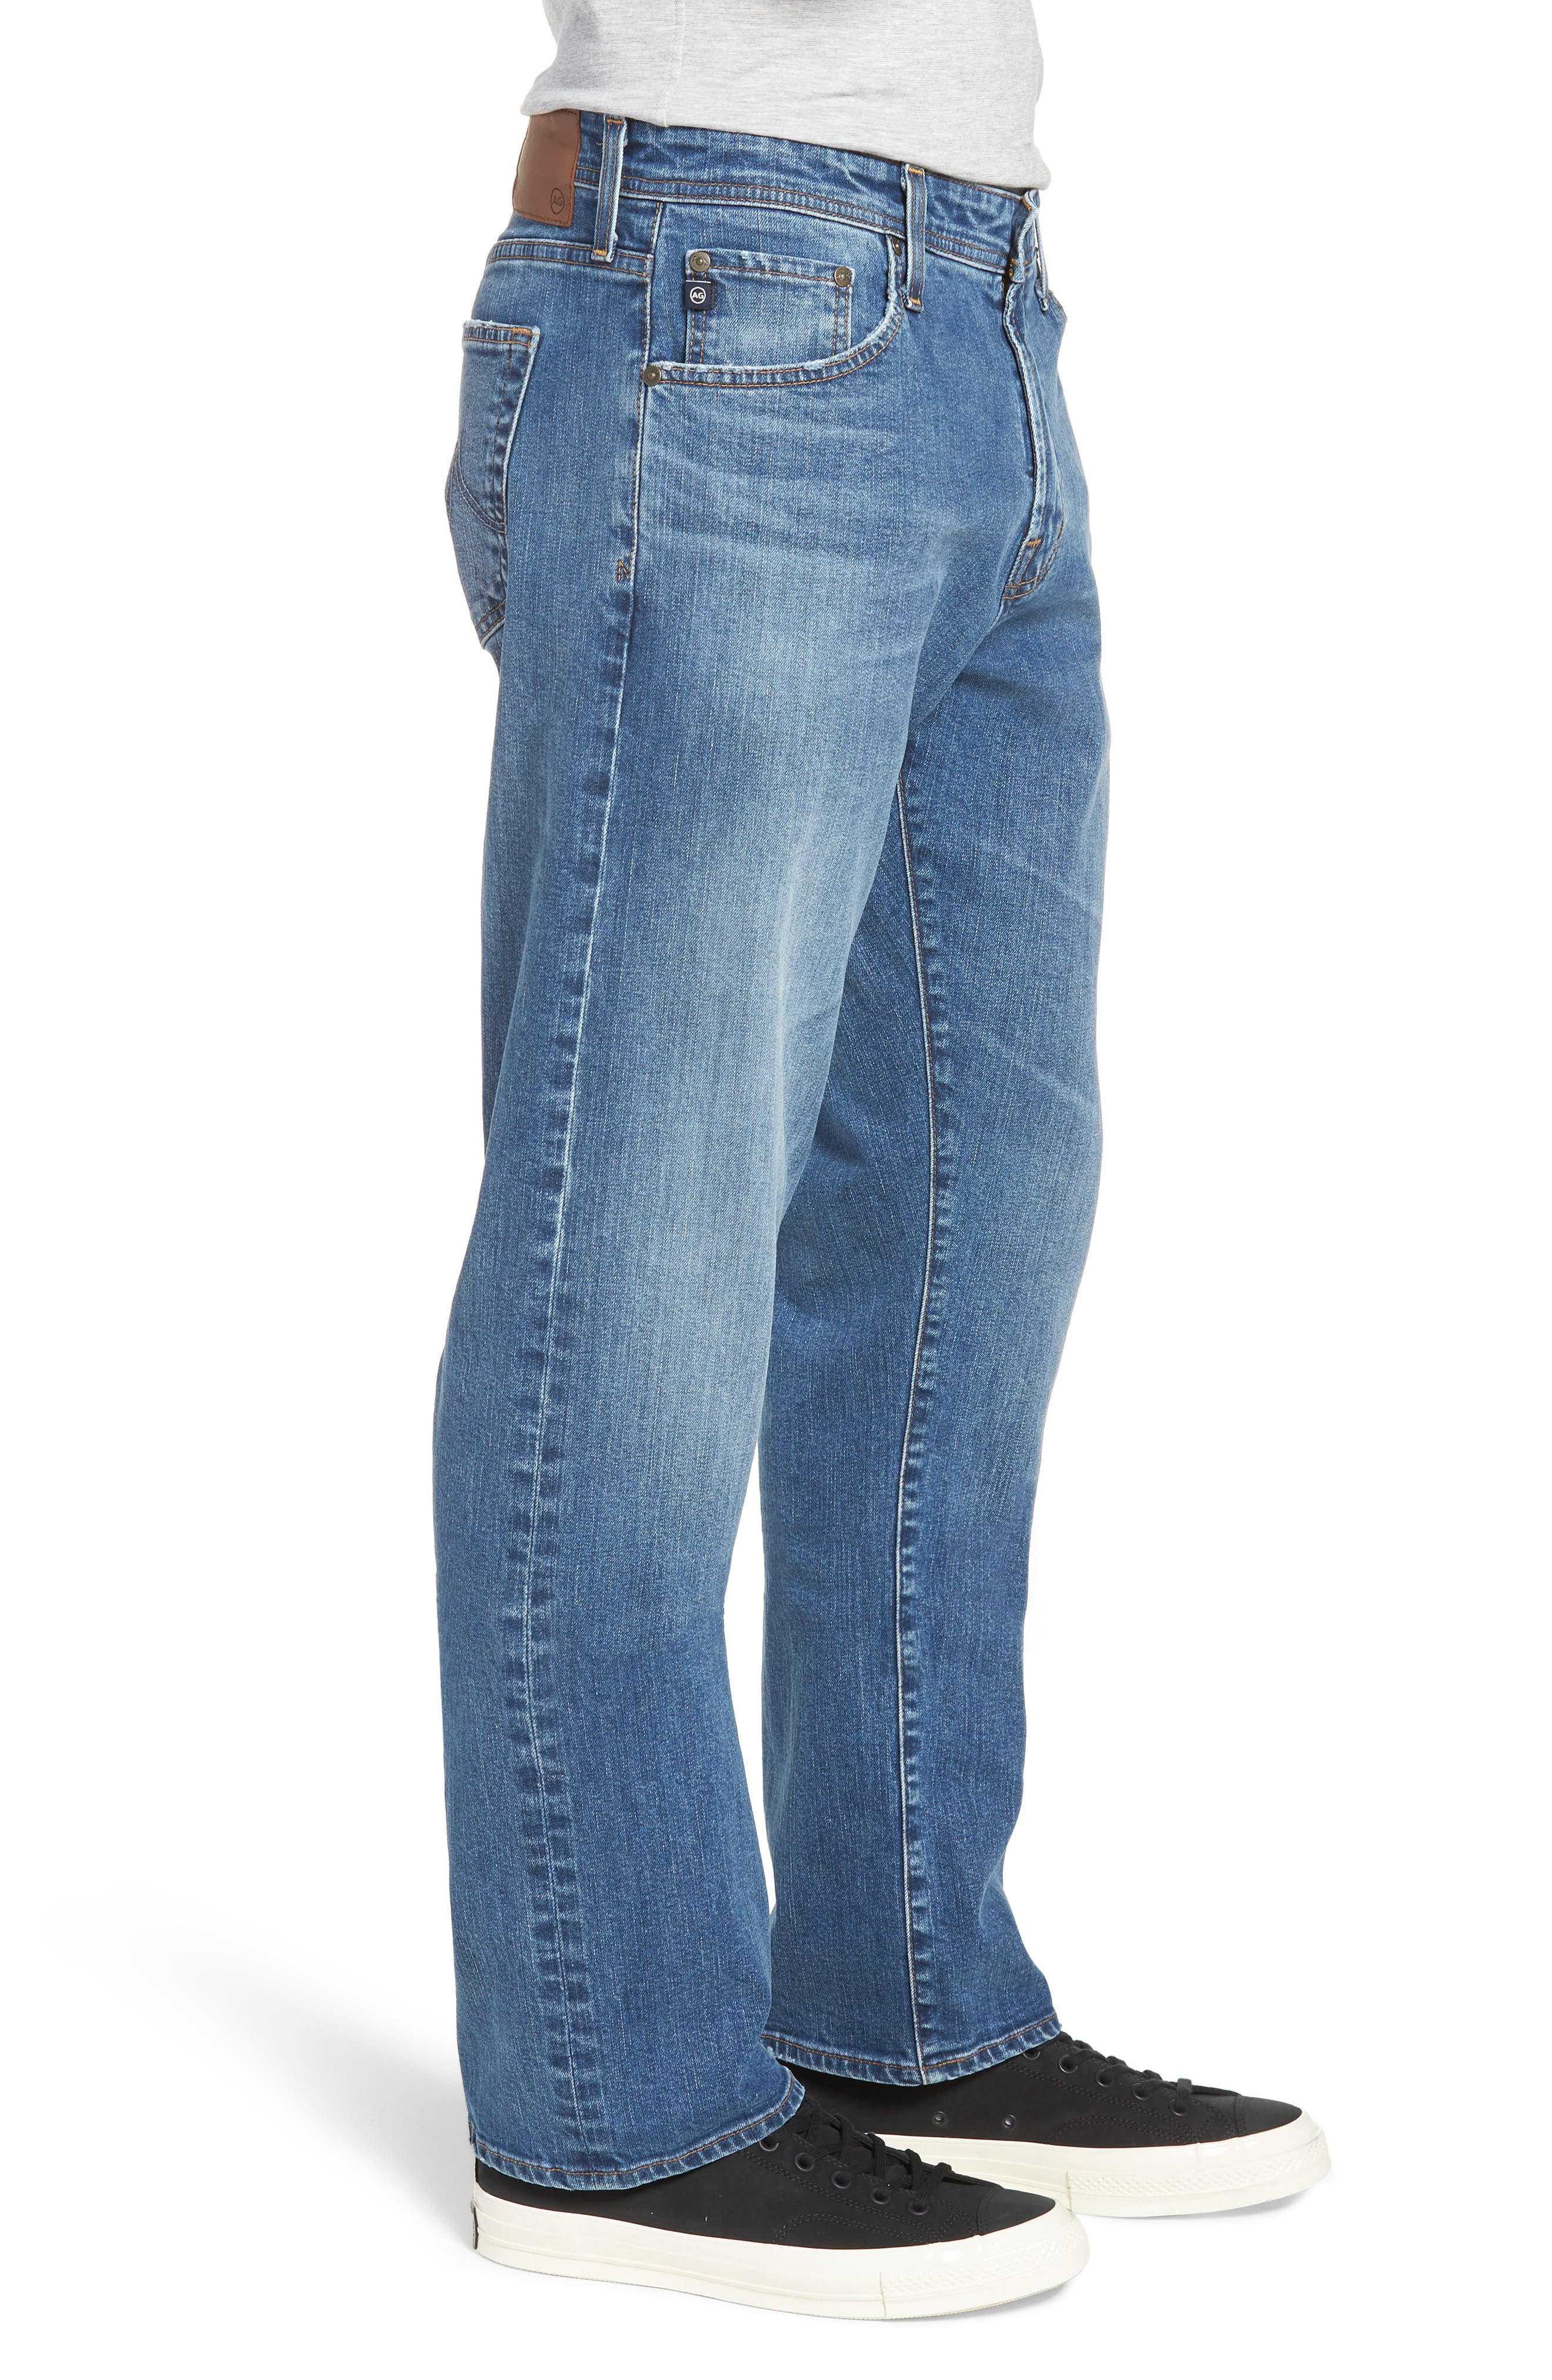 Ives Straight Leg Jeans,                             Alternate thumbnail 3, color,                             485